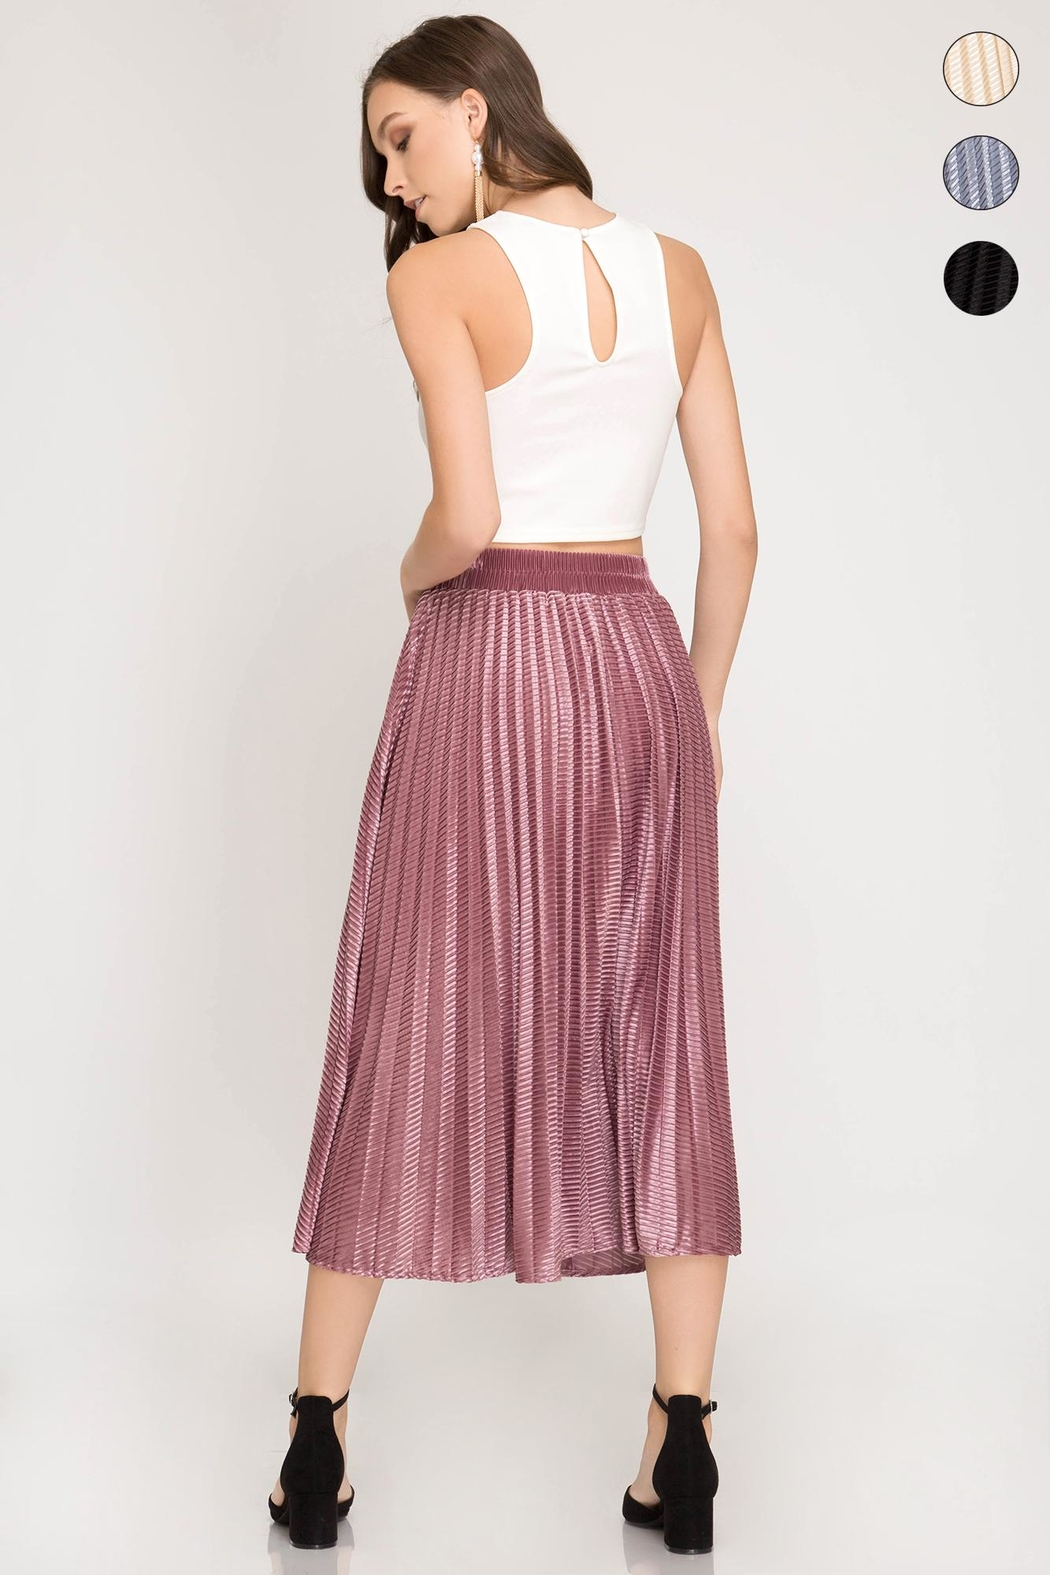 She + Sky Burn Out Skirt - Side Cropped Image